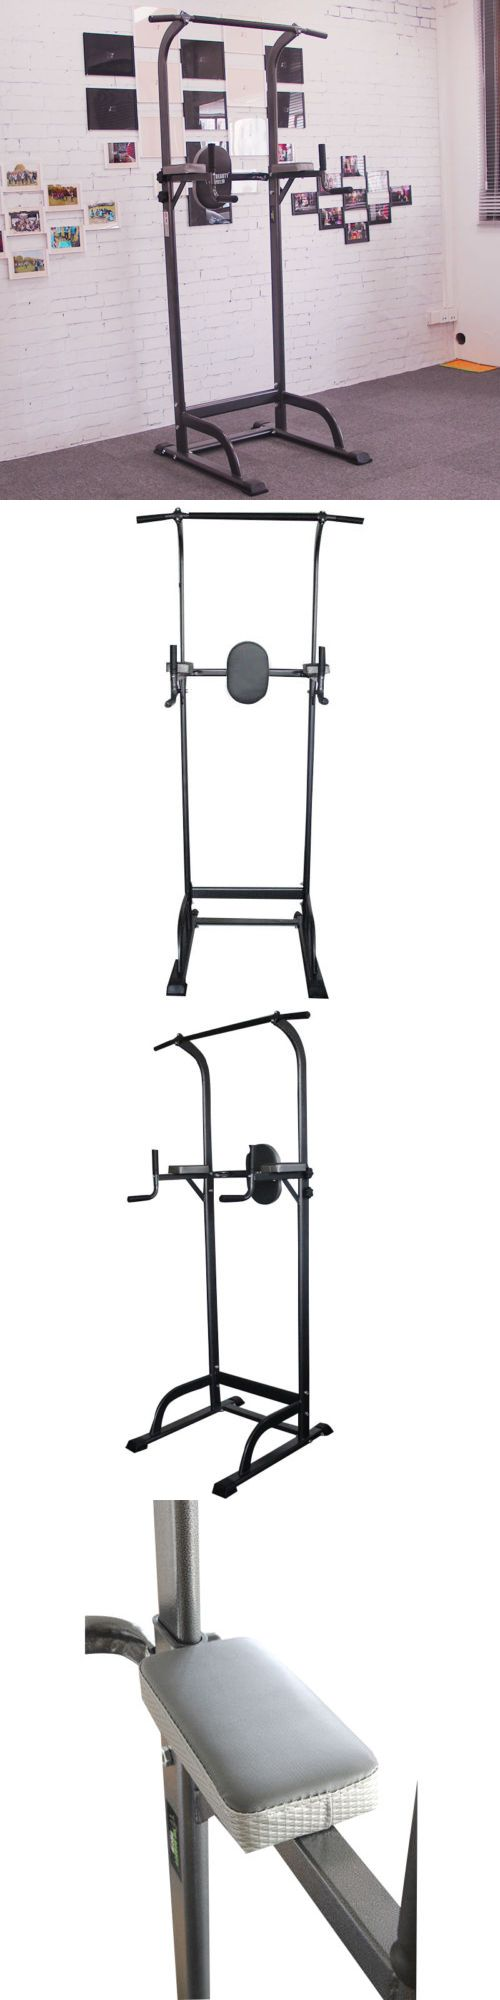 Pull Up Bars 179816: New Deluxe Power Tower Chin Up Station Knee Dip Push Up Pull Up Raise Gym -> BUY IT NOW ONLY: $99 on eBay!